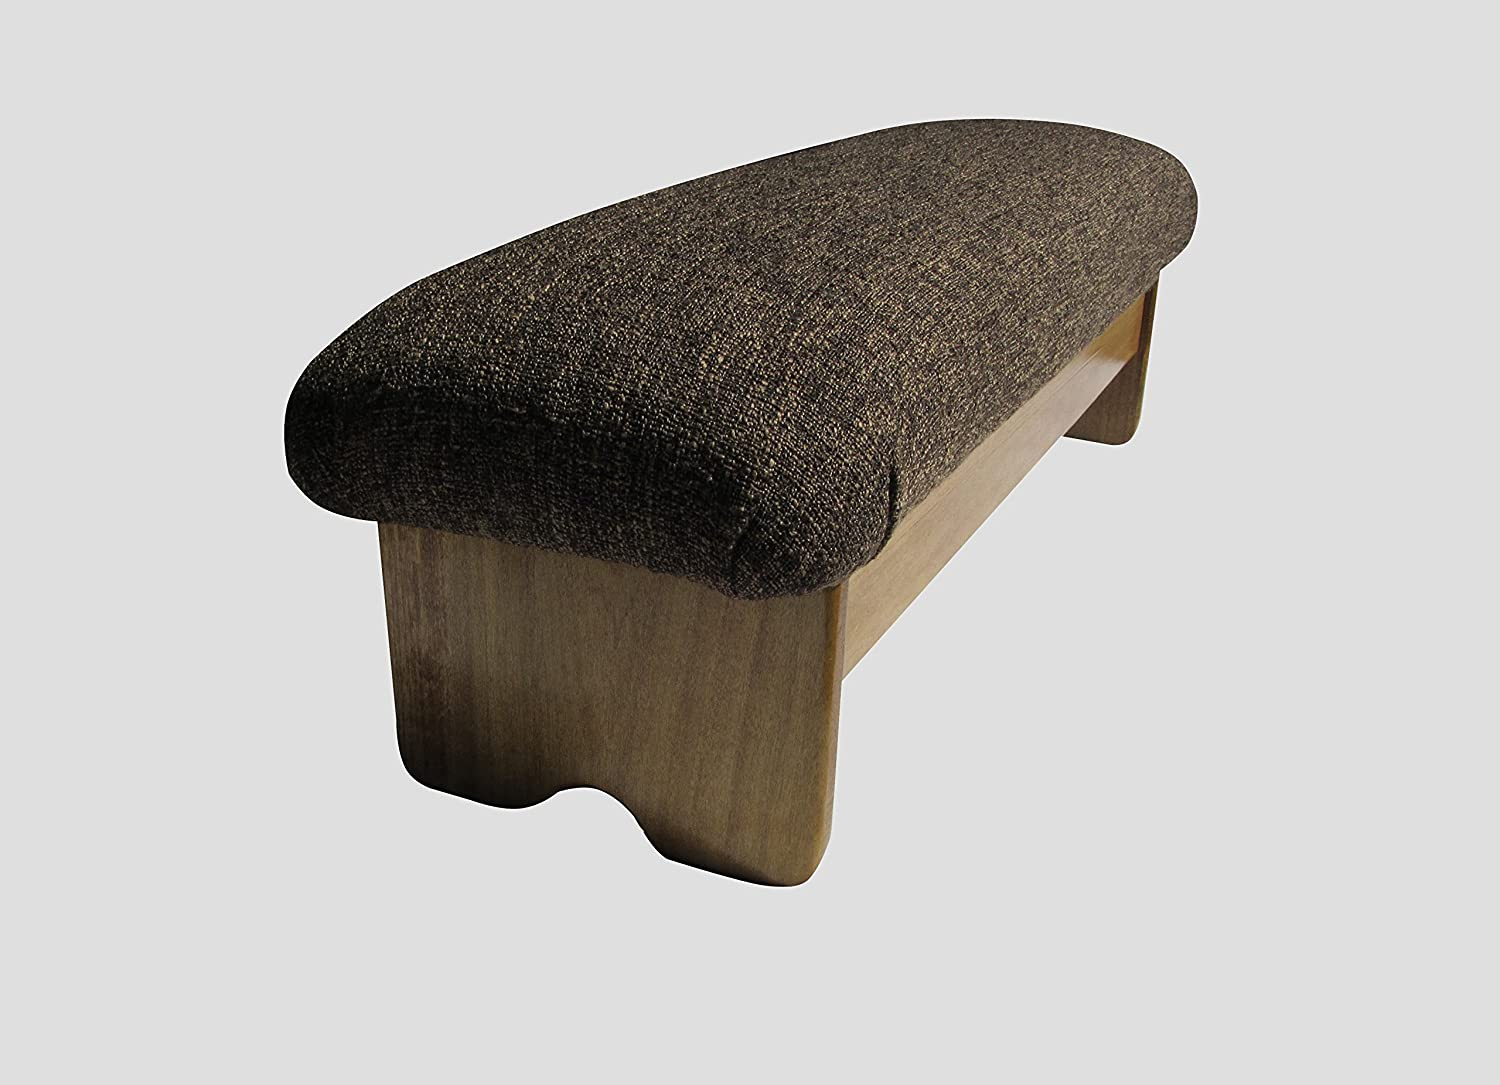 """KR Ideas Bedside Padded Foot Stool, Maple Stain 9"""" Tall (Made in The USA) (Cocoa Brown - 9"""" Maple)"""